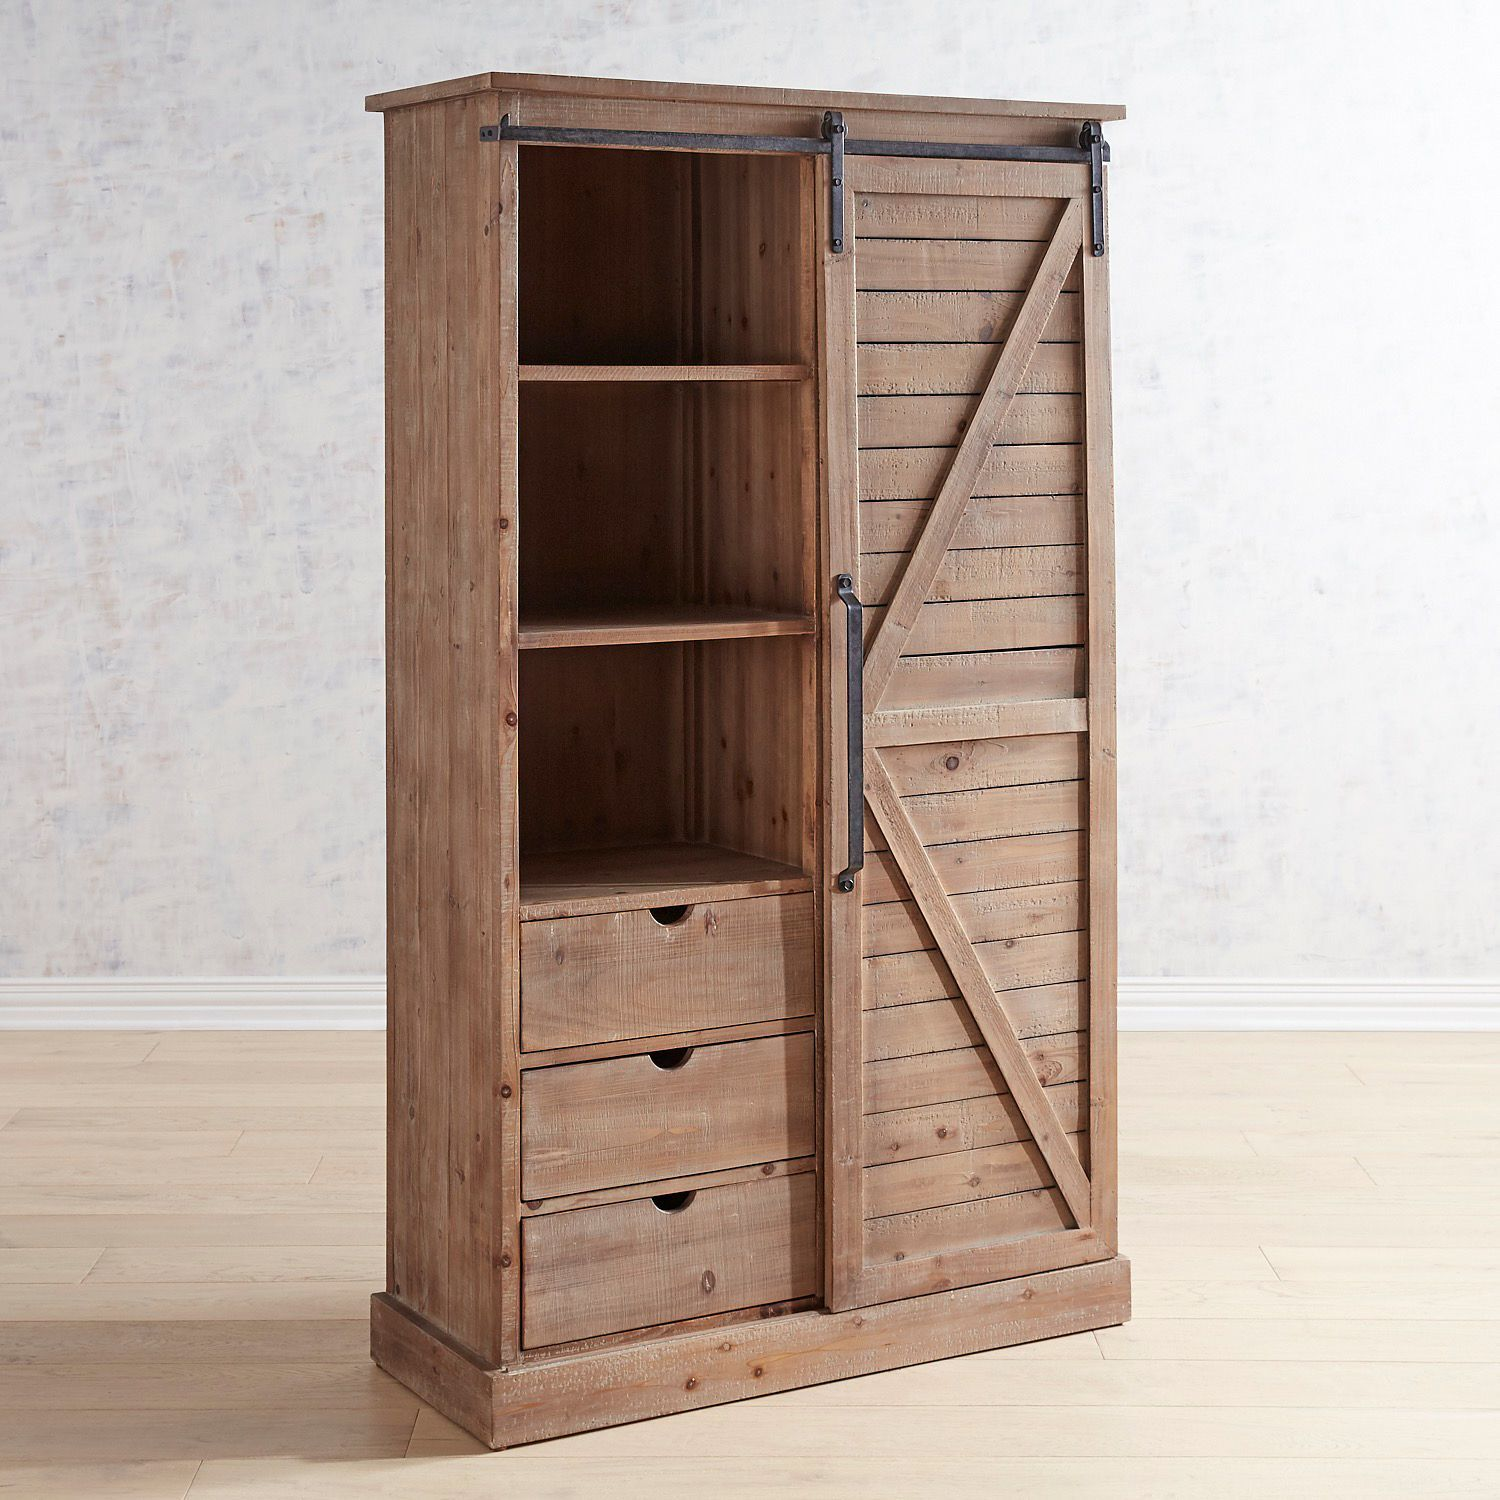 Tall Cabinet, Home Office Decor, Home